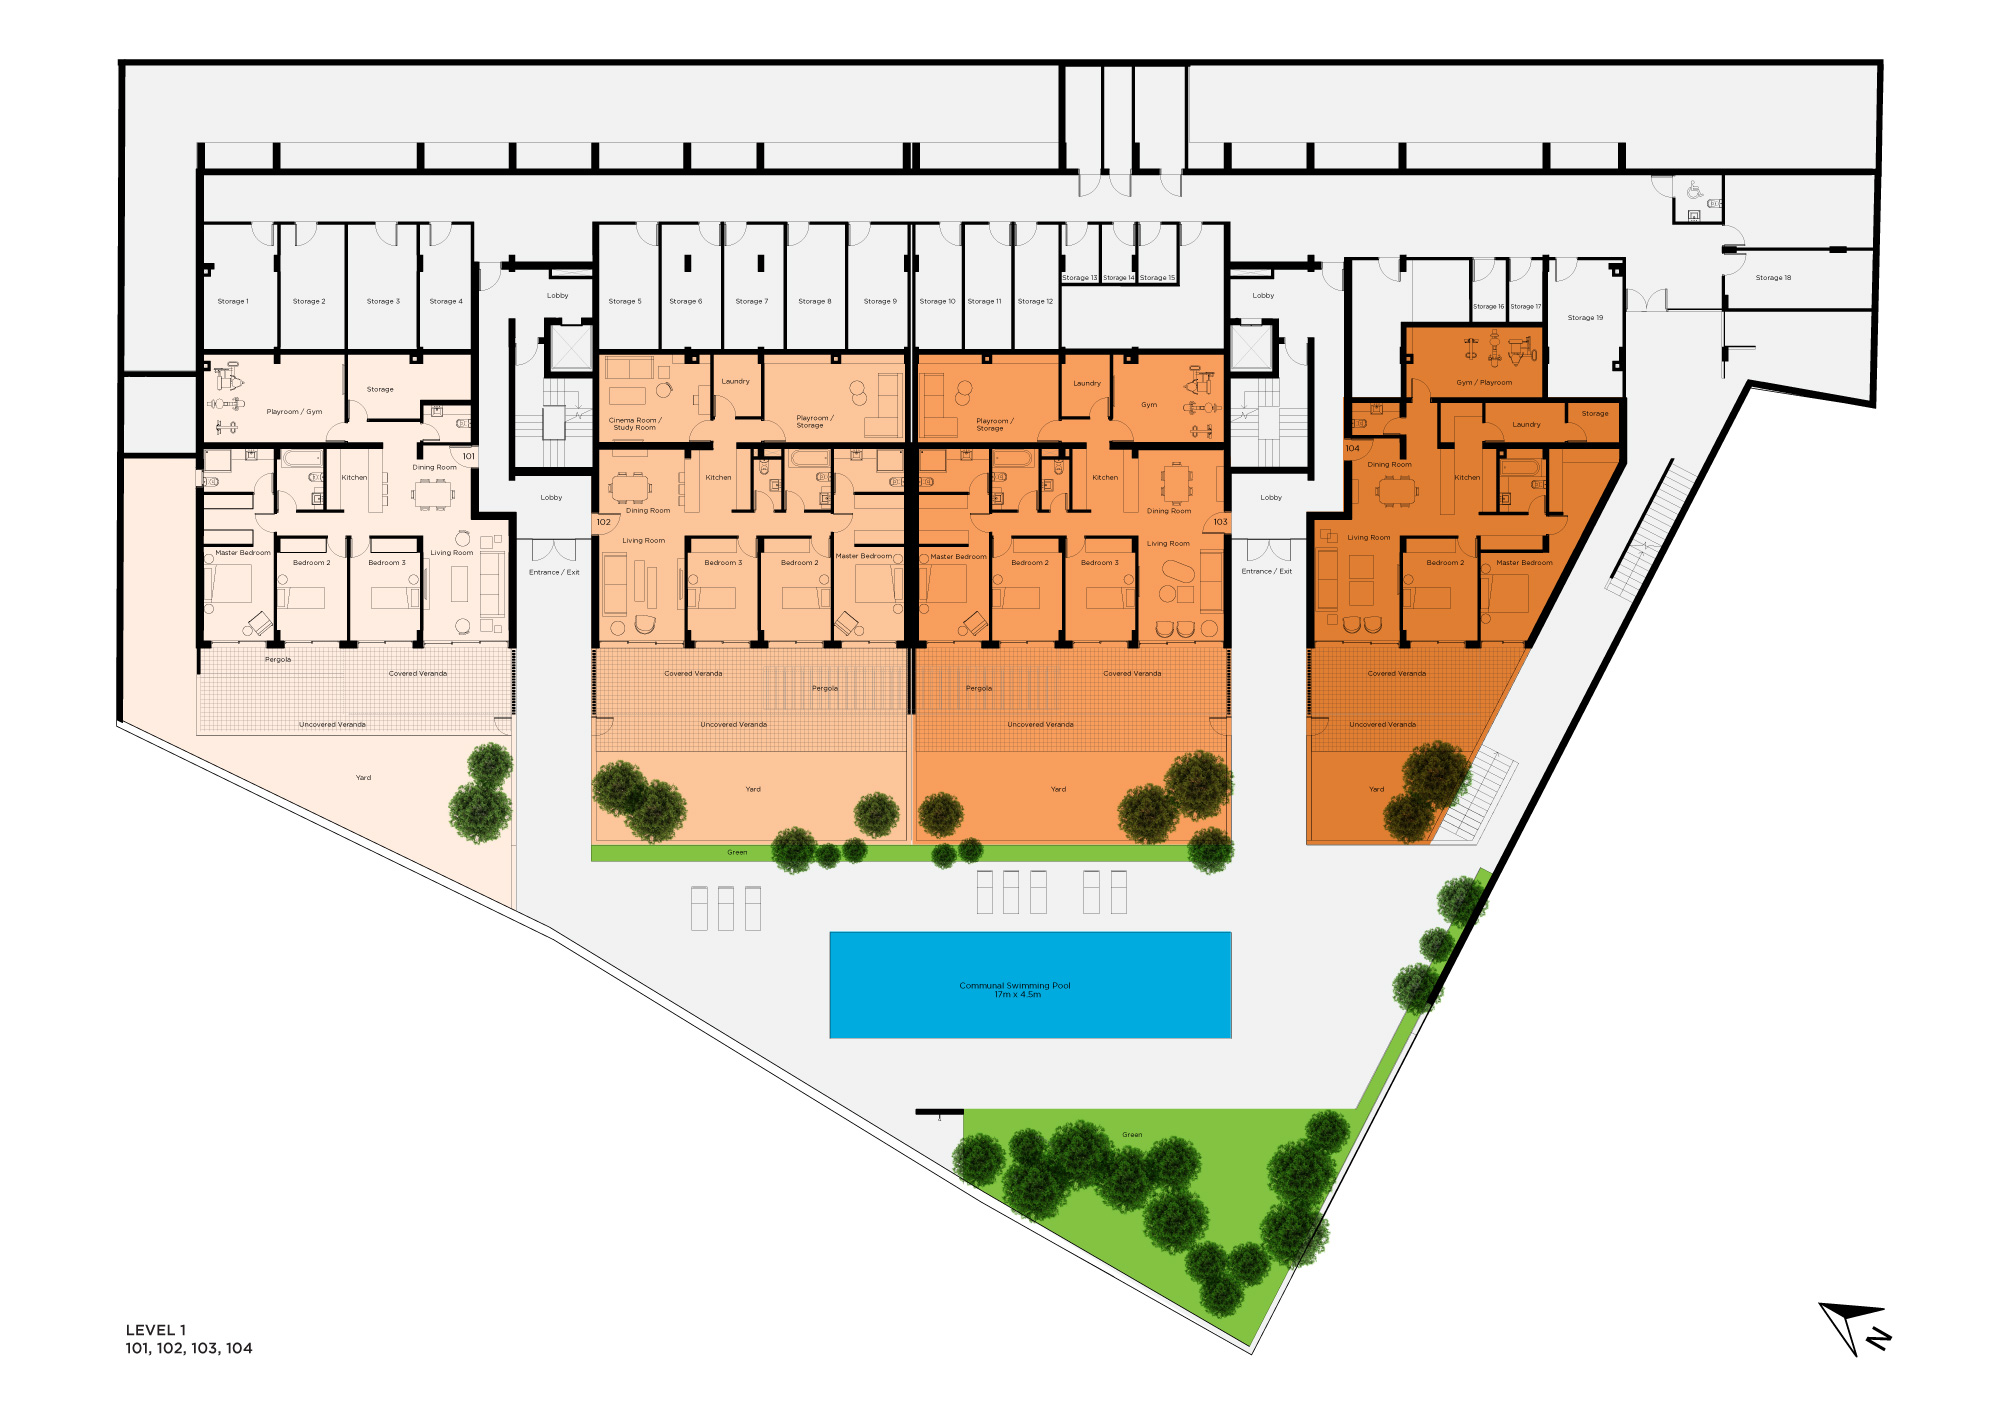 Pantheon Hill Level 1 Floorplan